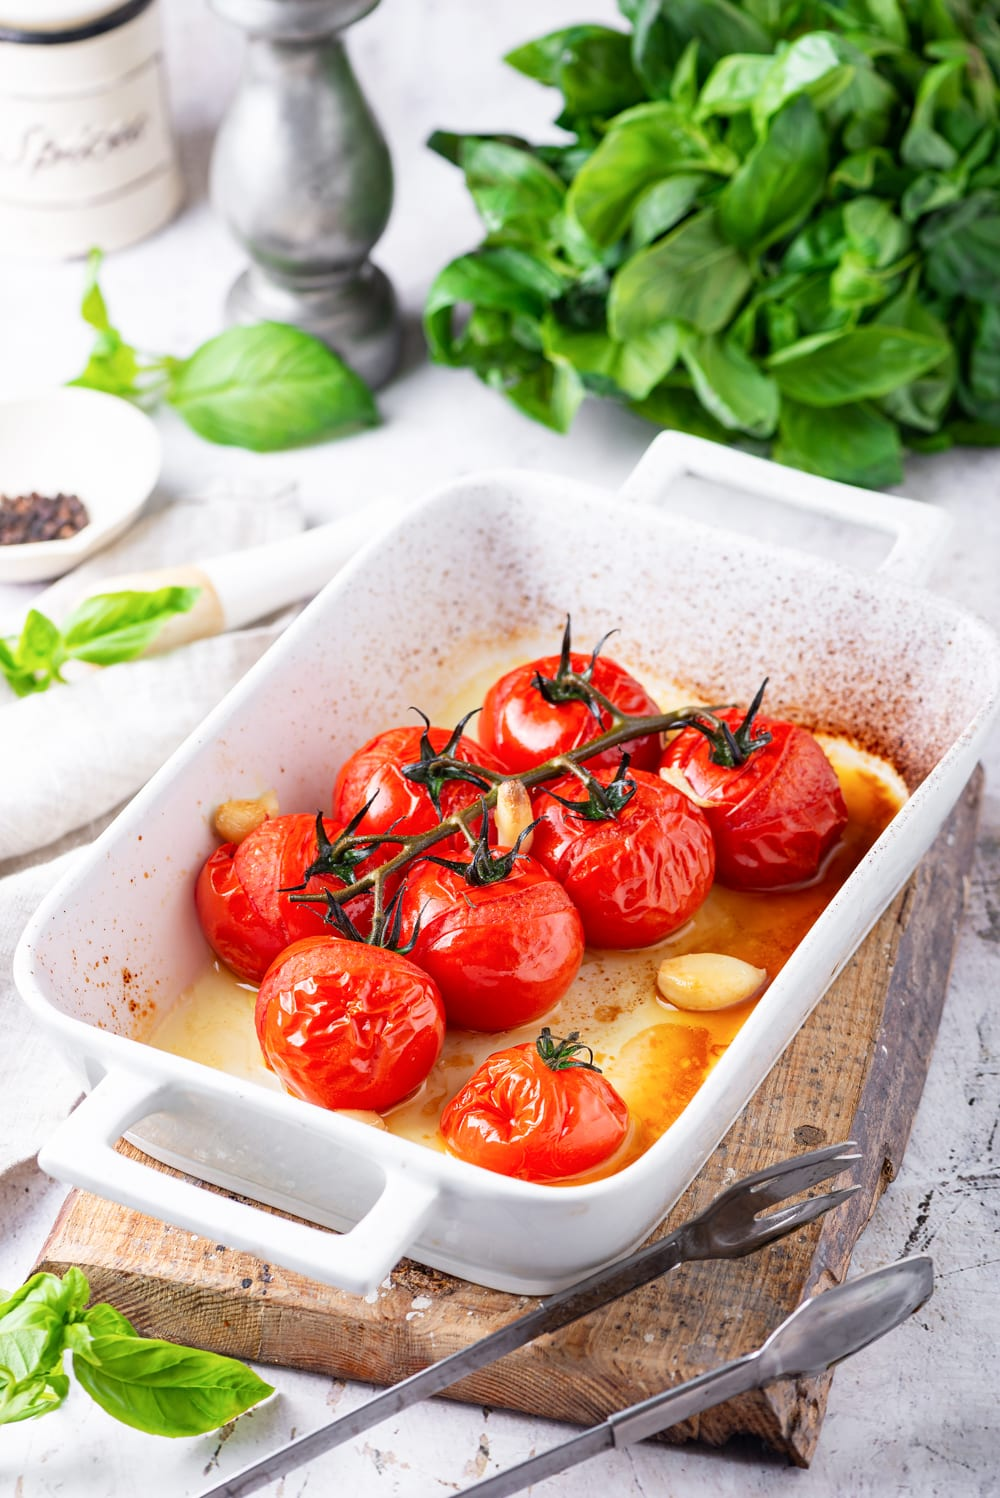 Tomatoes and garlic that have been cooked in a white baking dish with basil leaves behind it.